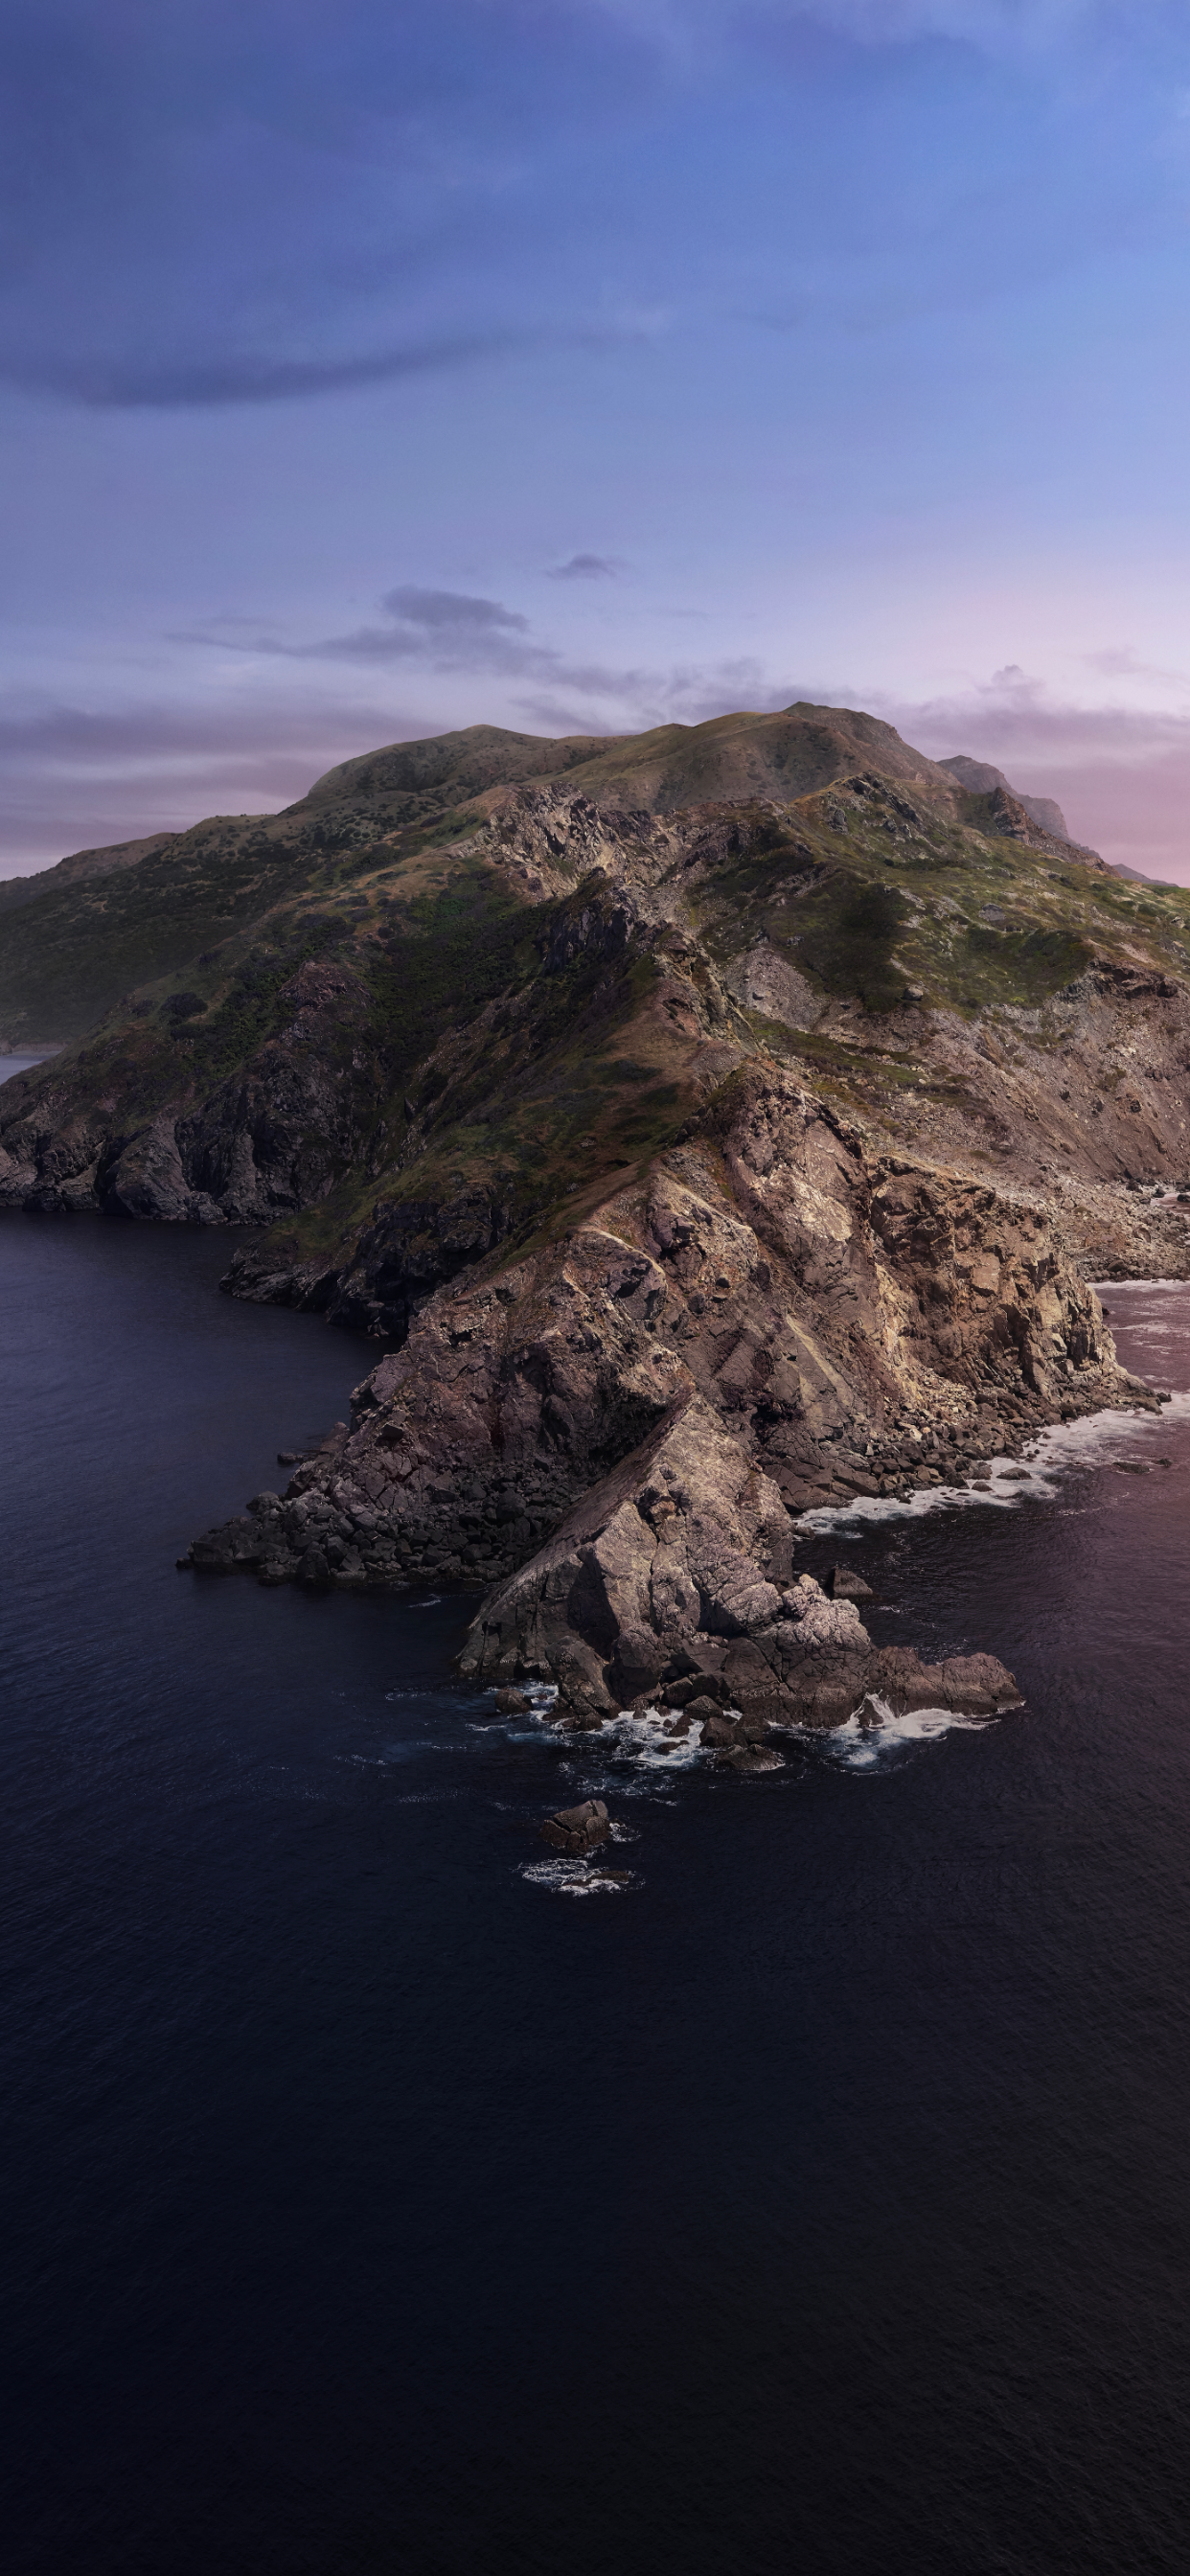 Download our official ios app and get over 3m+ photos and wallpapers in your pocket. Macos Catalina Wallpaper For Iphone Zollotech